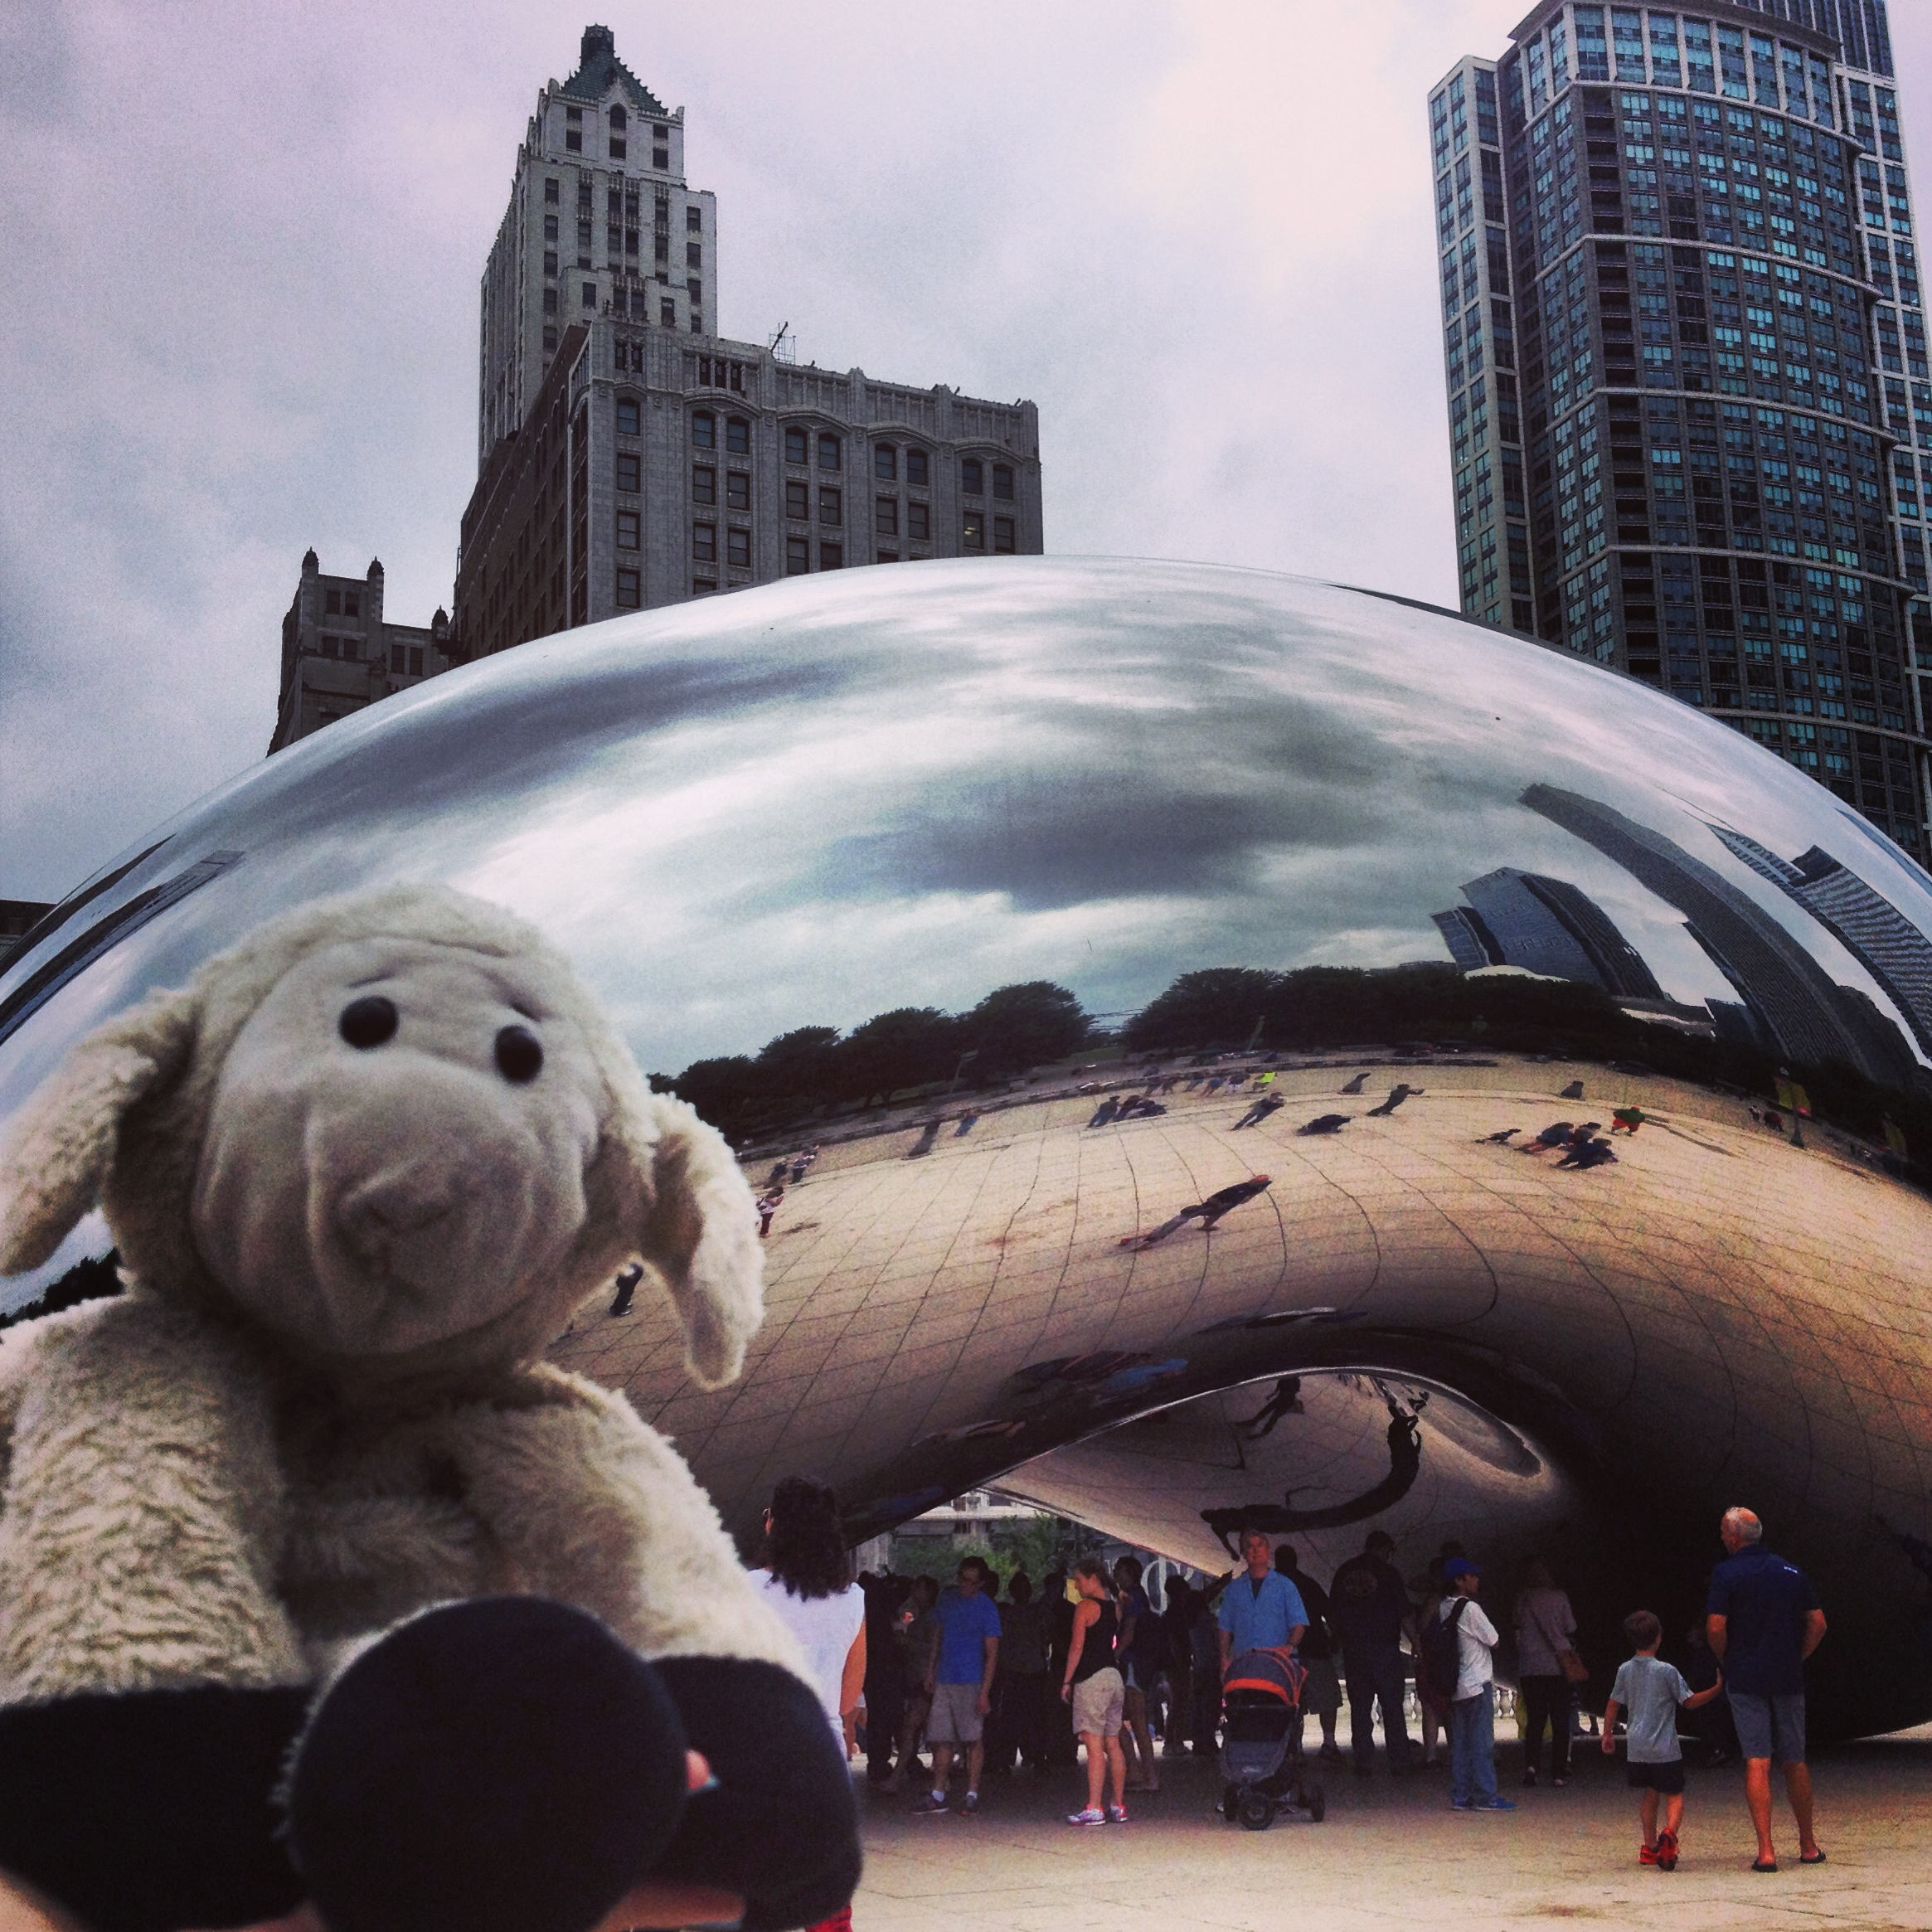 sheep selfie at the Bean in Millenium Park, Chicago